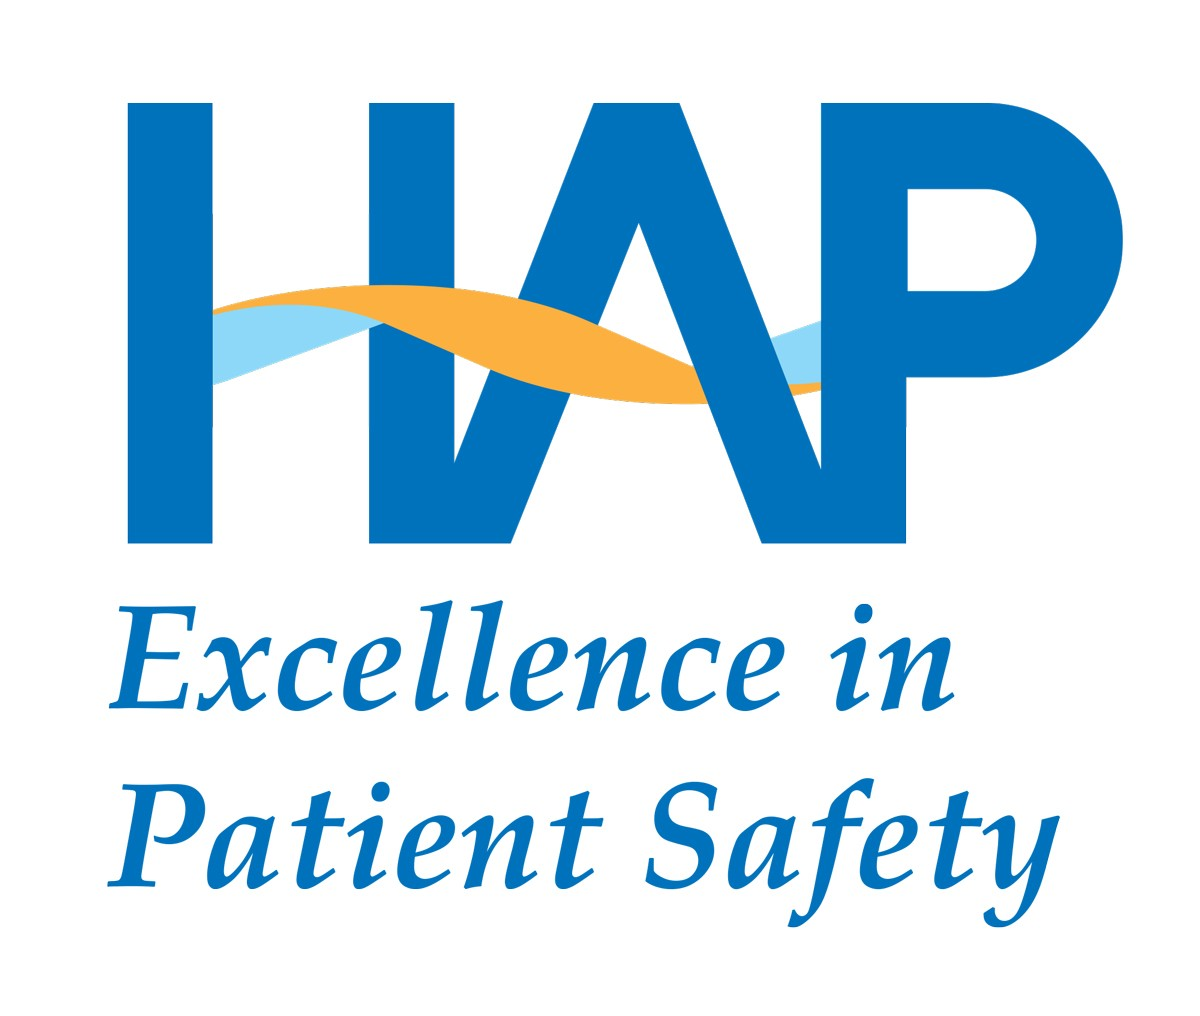 Excellence-in-Patient-Safety-Logo